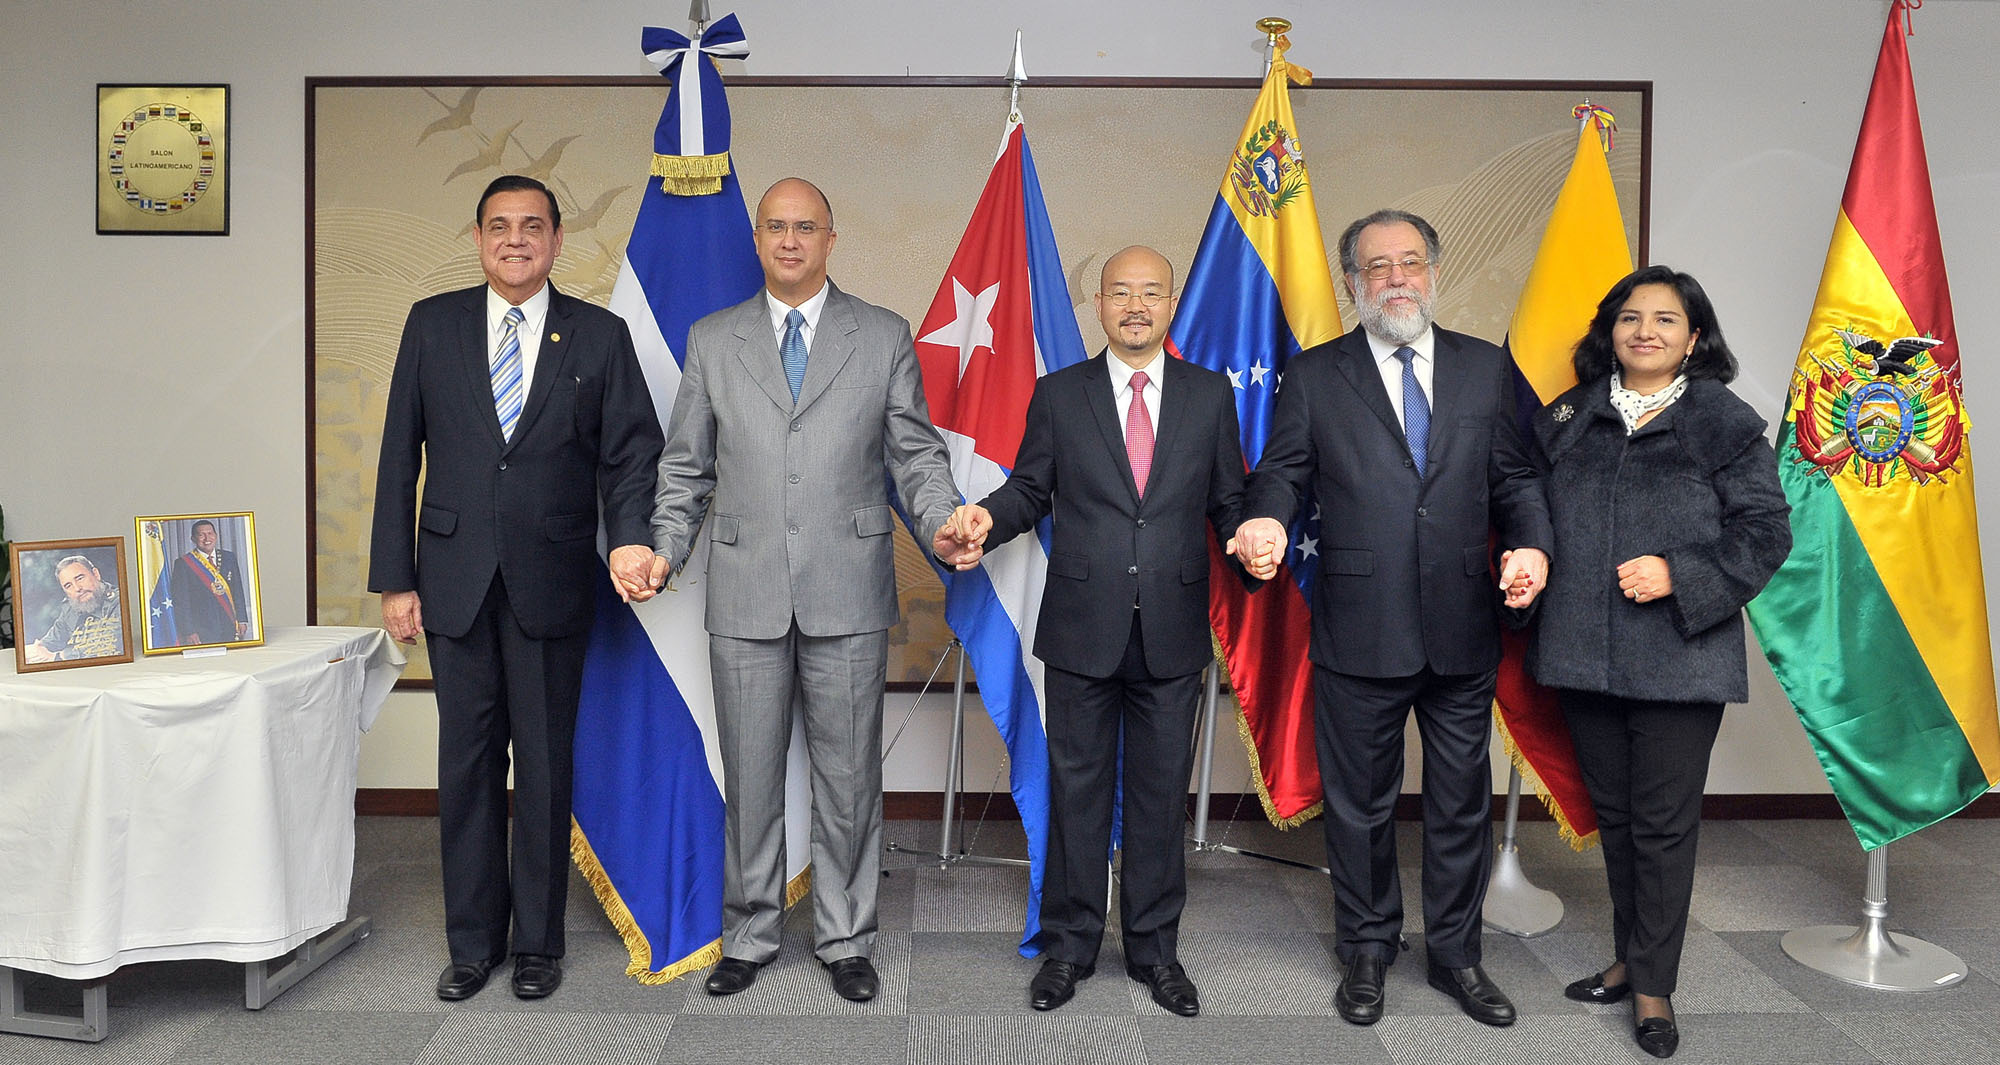 From left, Nicararagua's Ambassador, Saul Arana Castellon; Cuba's Ambassador Carlos M. Pereira; Venezuela's Ambassador Seiko Ishikawa; Ecuador's Ambassador Leonardo Carrion; and Bolivia's Charge d'Affaires a.i. Angela Ayllon join hands during a reception to celebrate of the 12th anniversary of the foundation of the Bolivarian Alliance for the Peoples of Our America at the Latin American Salon, in Tokyo's Minato Ward on Dec. 22. | YOSHIAKI MIURA